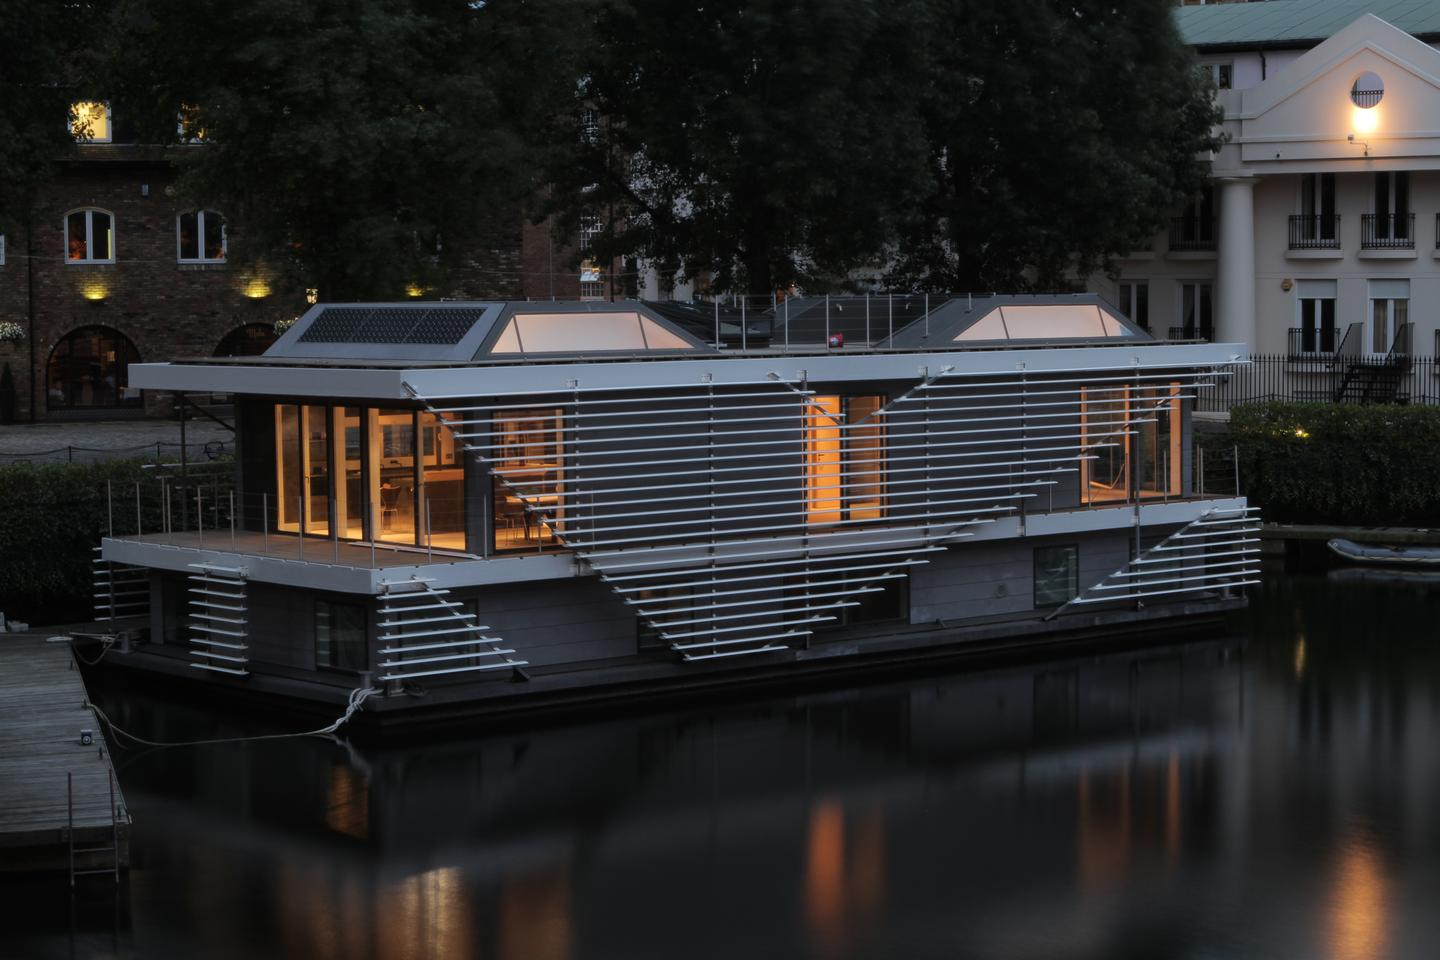 London based Sanitov Studio launched its stylish and sustainable floating home during the London Design Festival